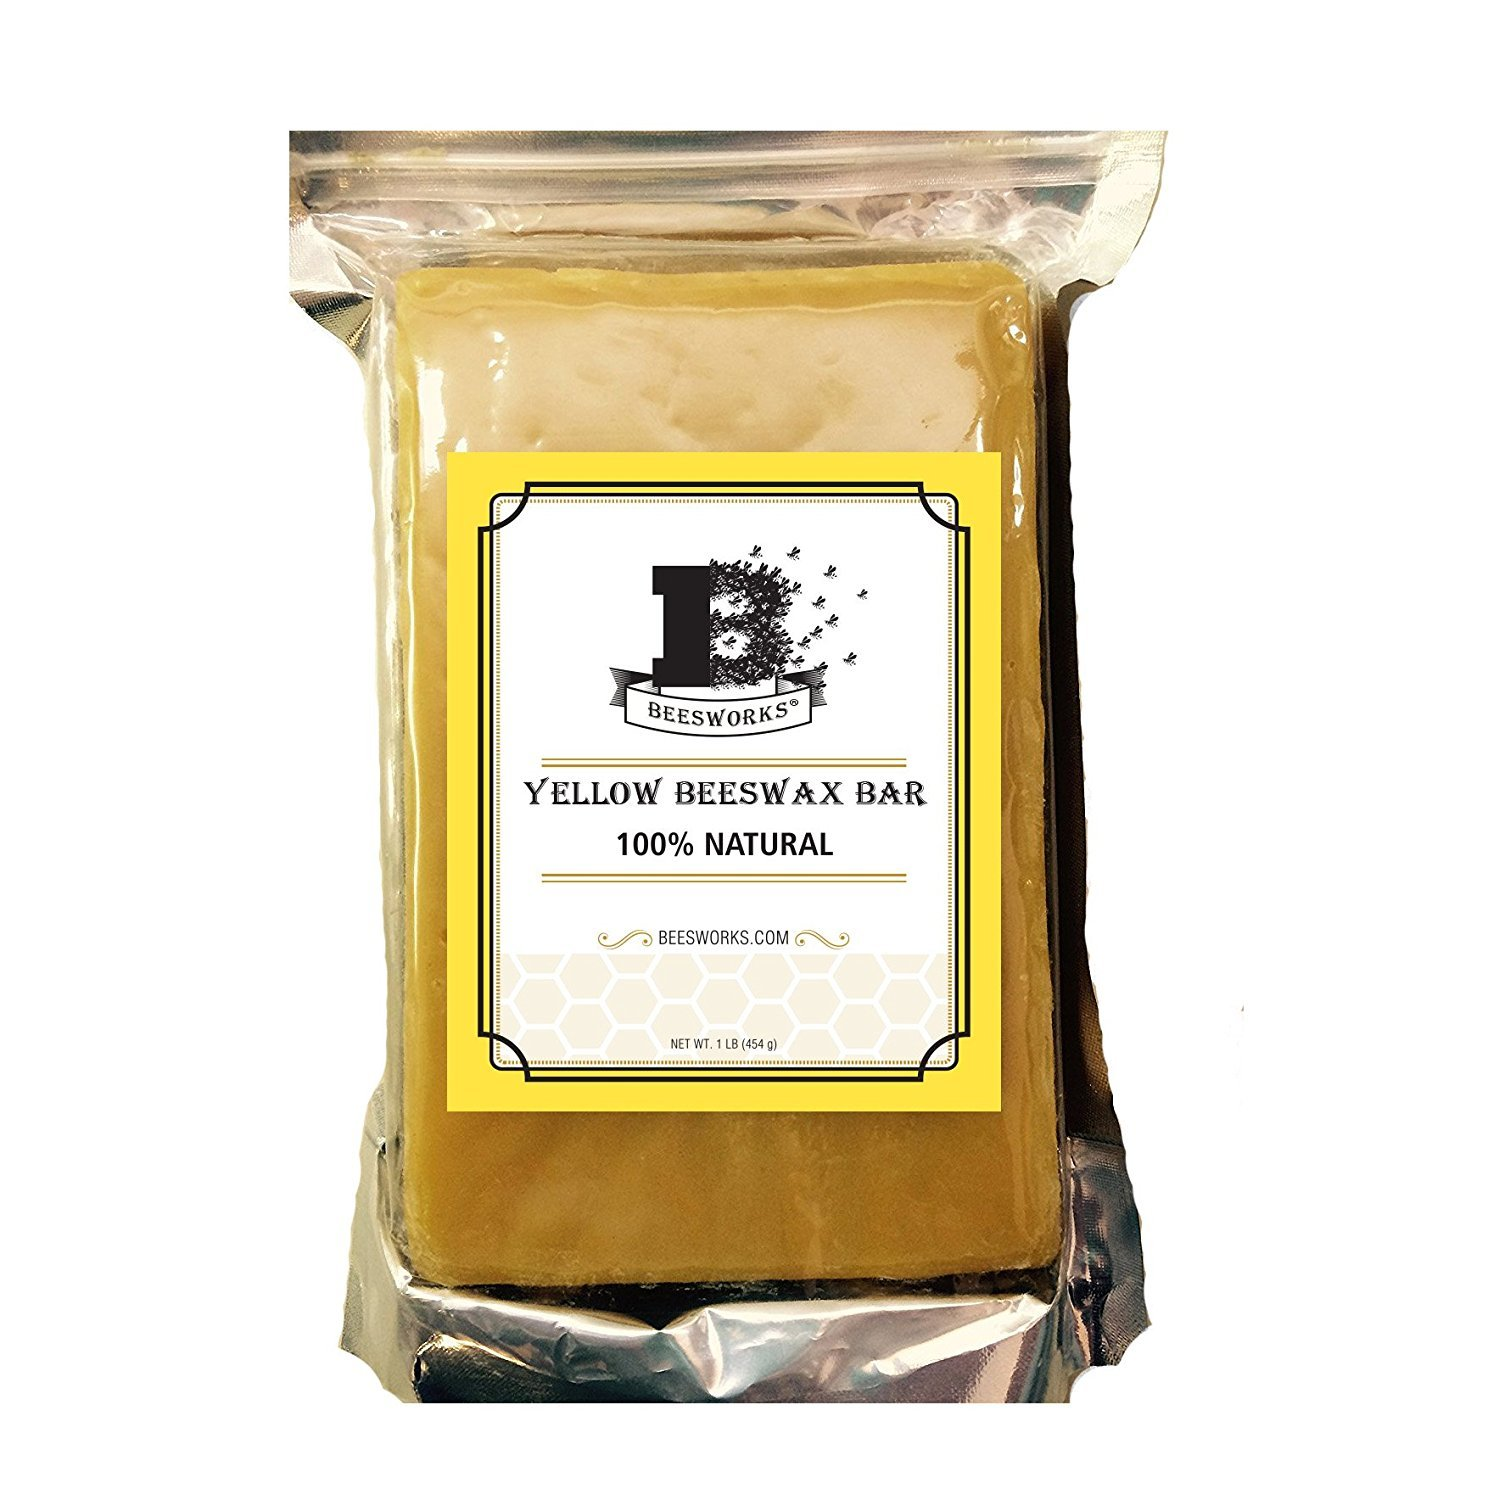 Beesworks-2 Pack-Yellow Beeswax Bars 1LB - (2 lbs Total) - 100% Pure, Cosmetic Grade Beesworks® 4336841651